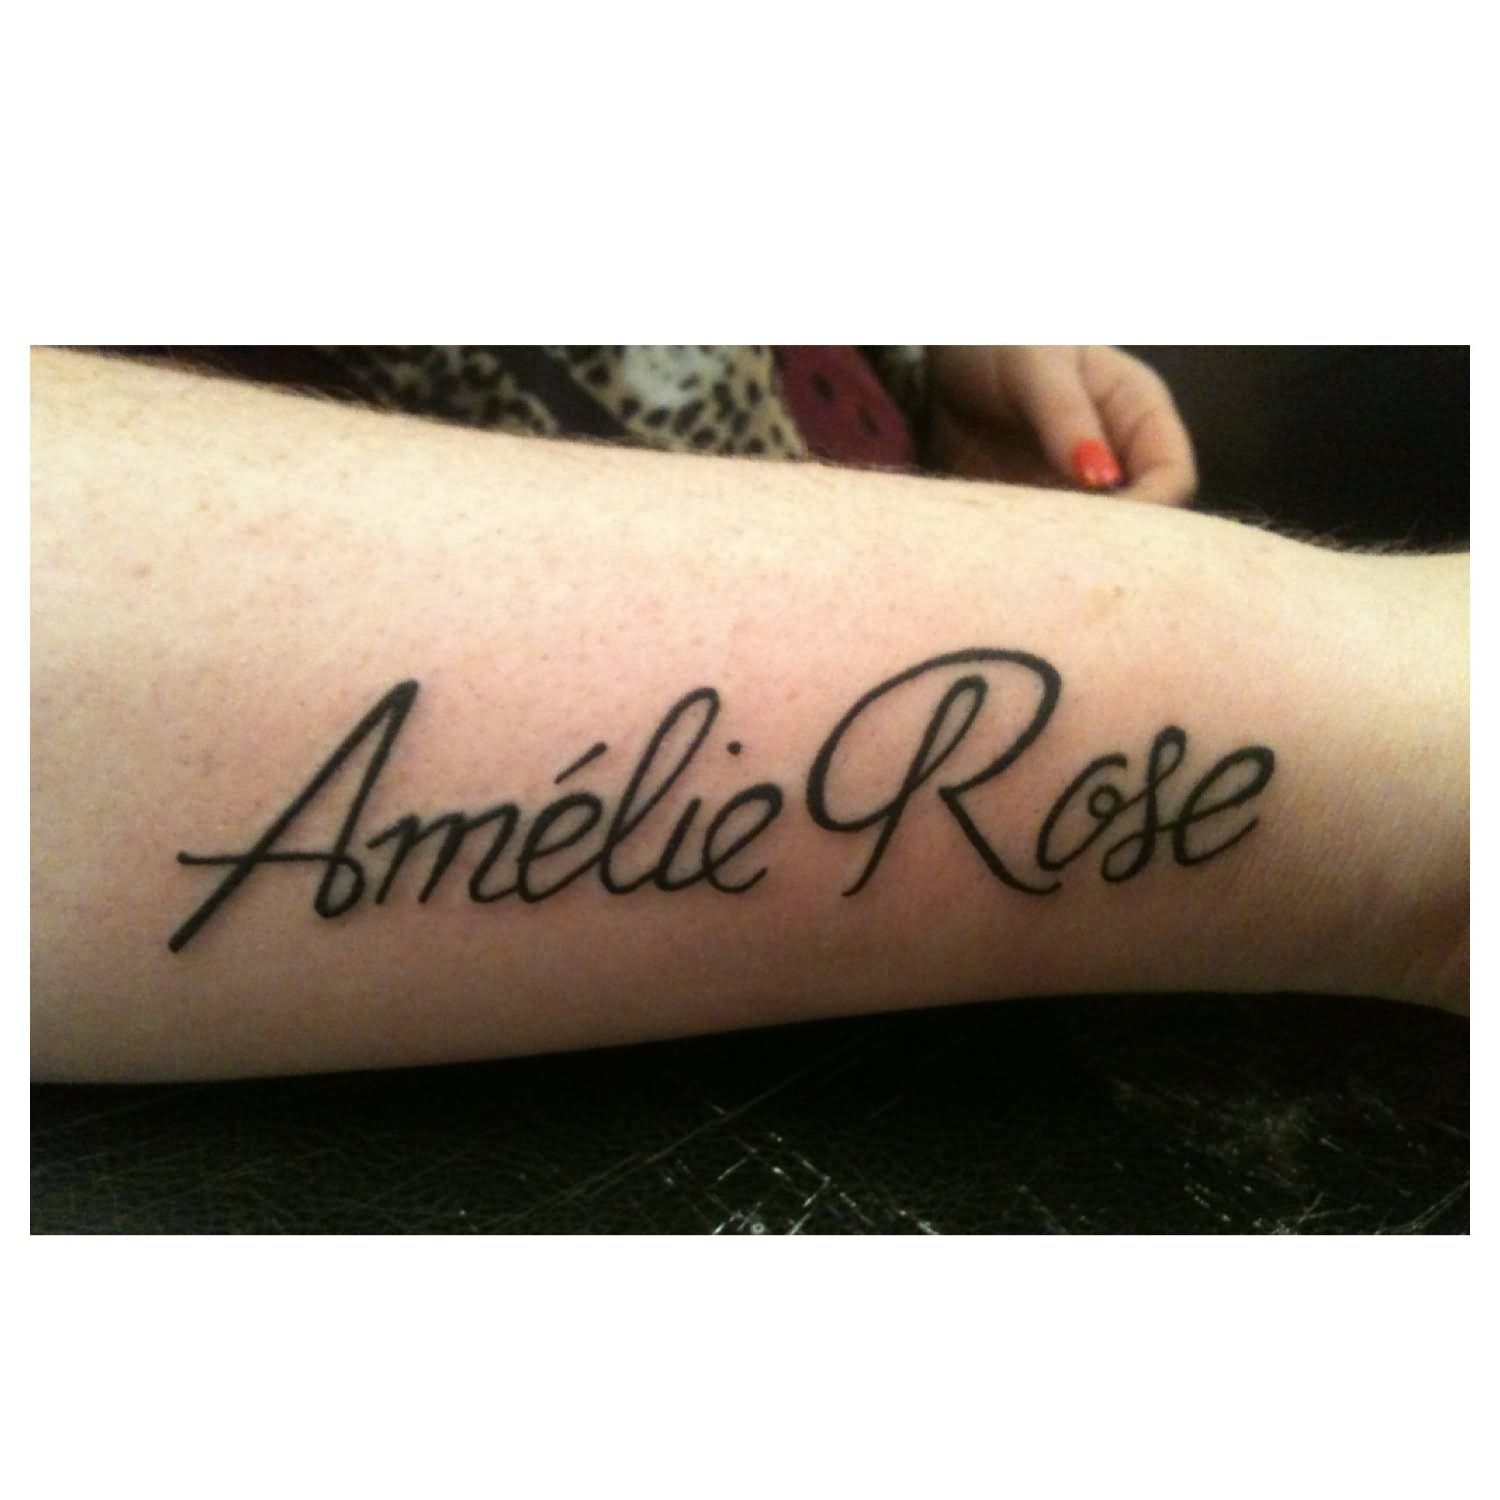 bfd1372f2 Amelie Rose Baby Name Tattoo Design For Sleeve